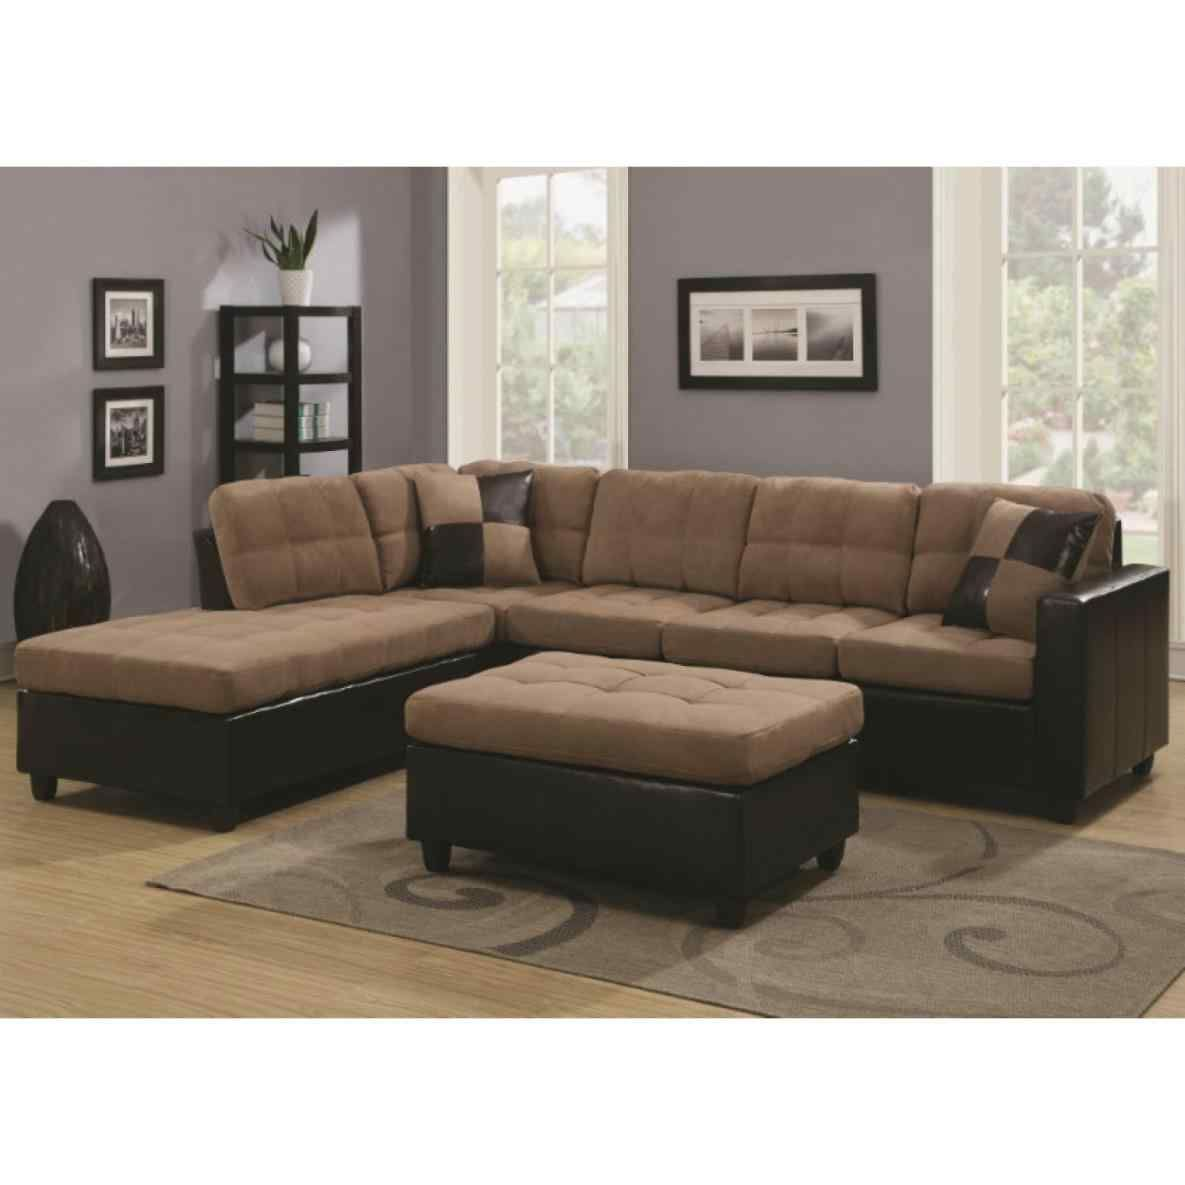 Roselawnlutheran For Nice Cheap Sectional Sofas Sale Roselawnlutheran L Shaped Sleeper Sofa U Interior Desig Upholstered Sectional Sectional Sofa Tan Sectional